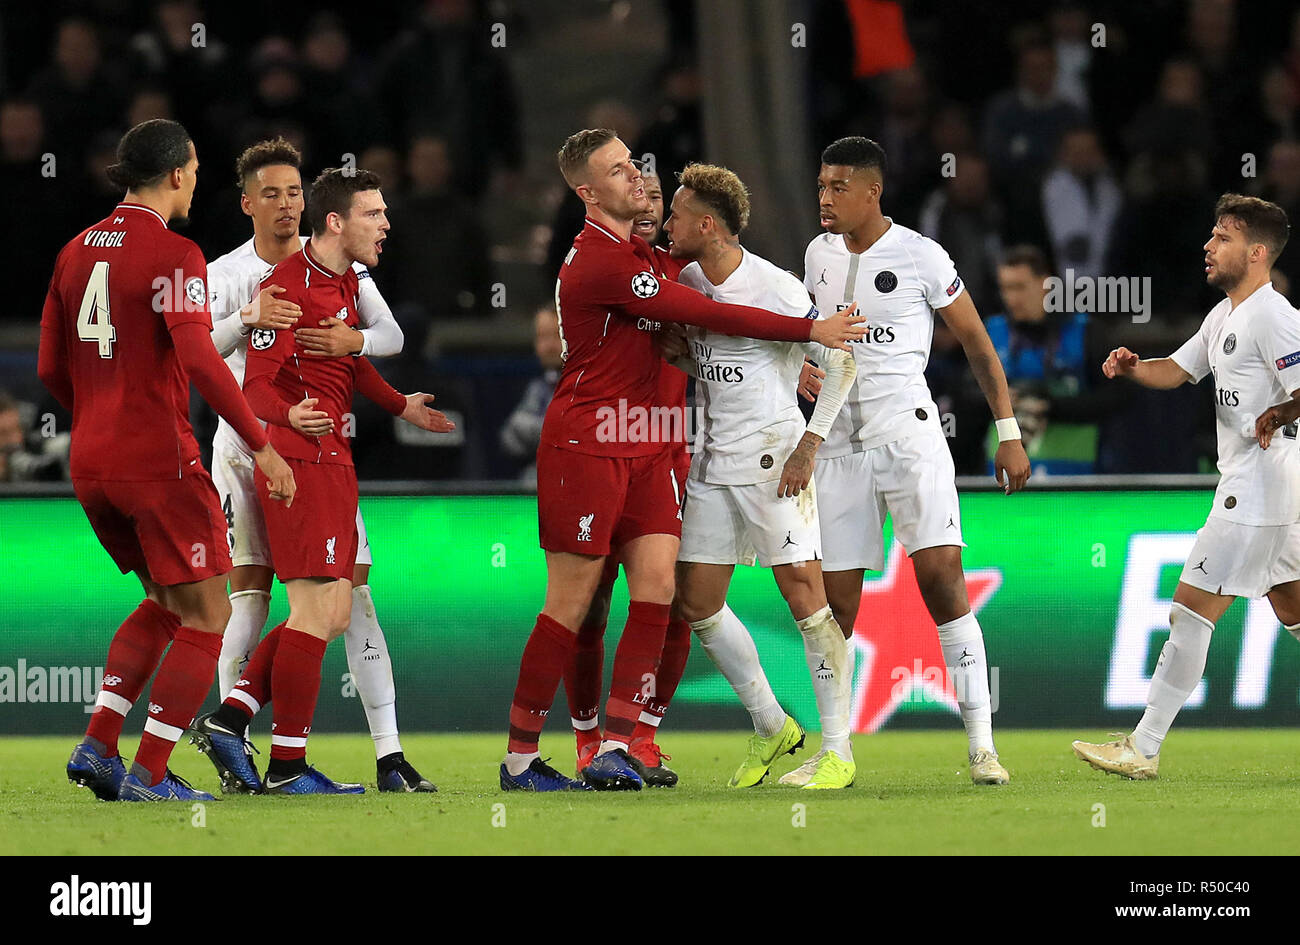 a243871ed92 Liverpool s Andrew Robertson (left) and Paris Saint-Germain s Neymar  exchange words during the UEFA Champions League